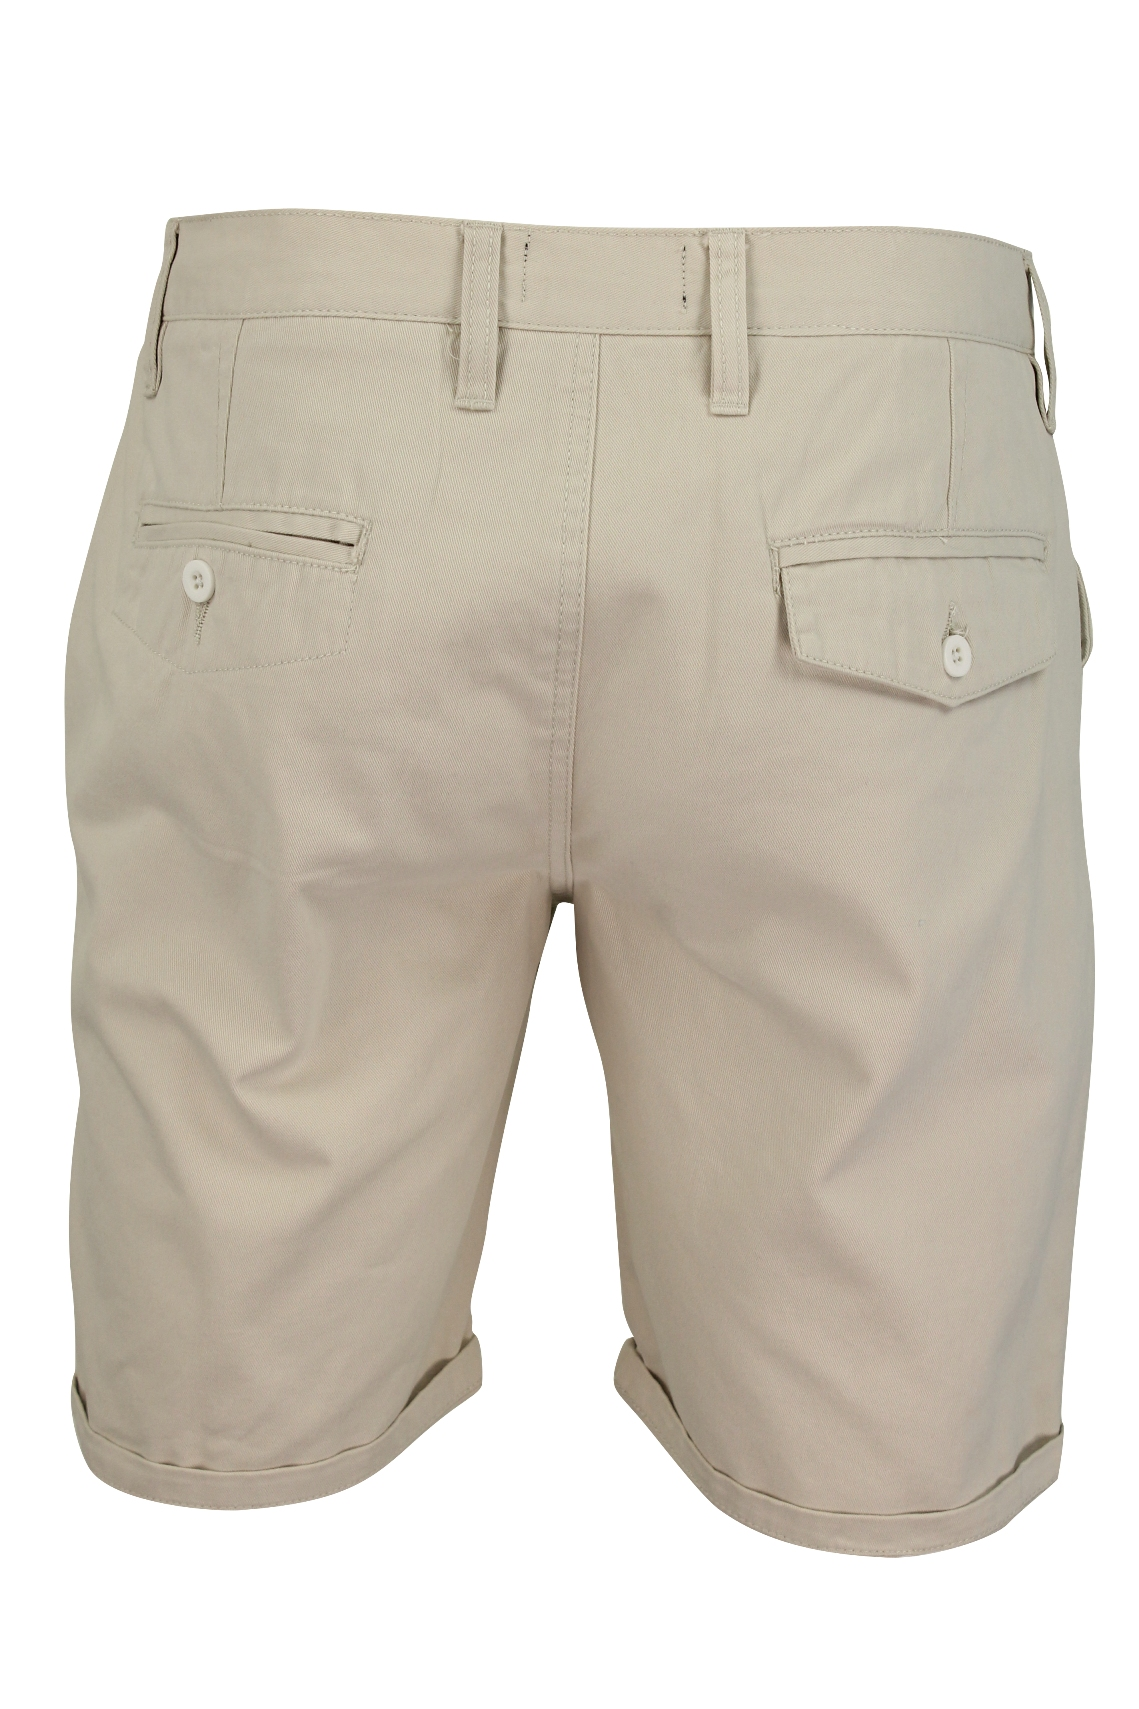 Mens-Chino-Shorts-by-Brave-Soul-039-Fern-039-Cotton-Twill